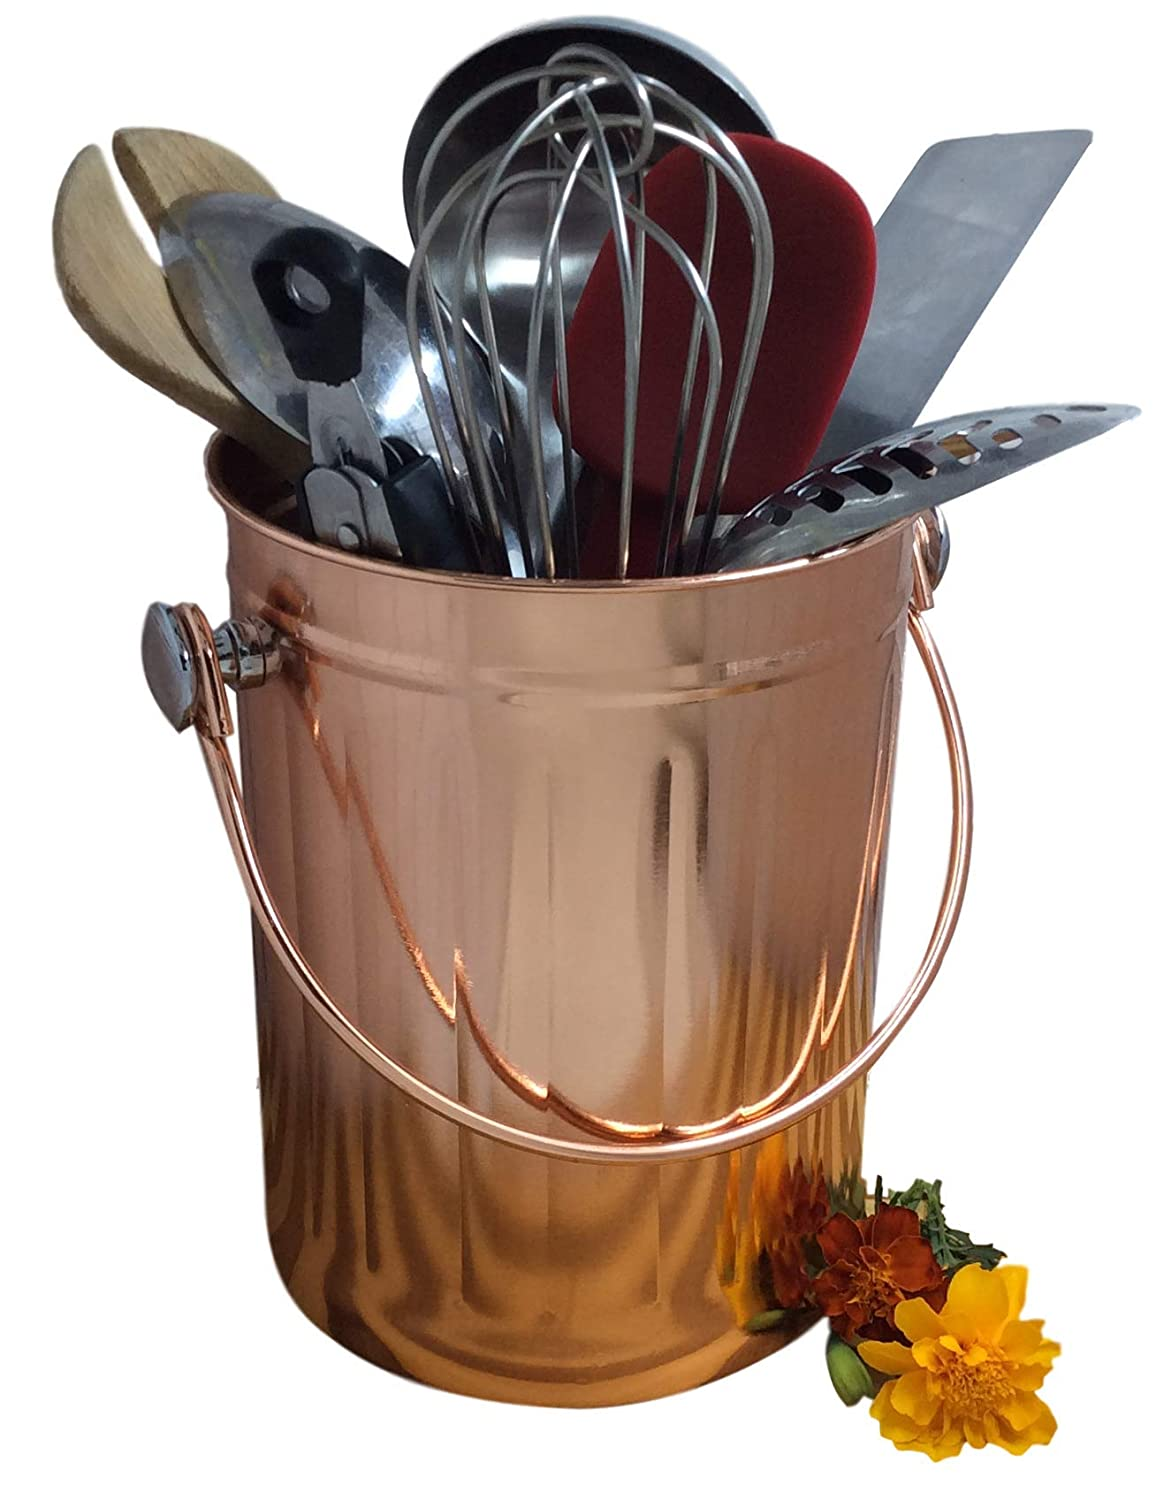 Utensil Holder Caddy Crock to Organize Kitchen Tools - Copper Kitchen Accessories - Large 1 Gallon Capacity by Goldsol Brands Copper-Pail